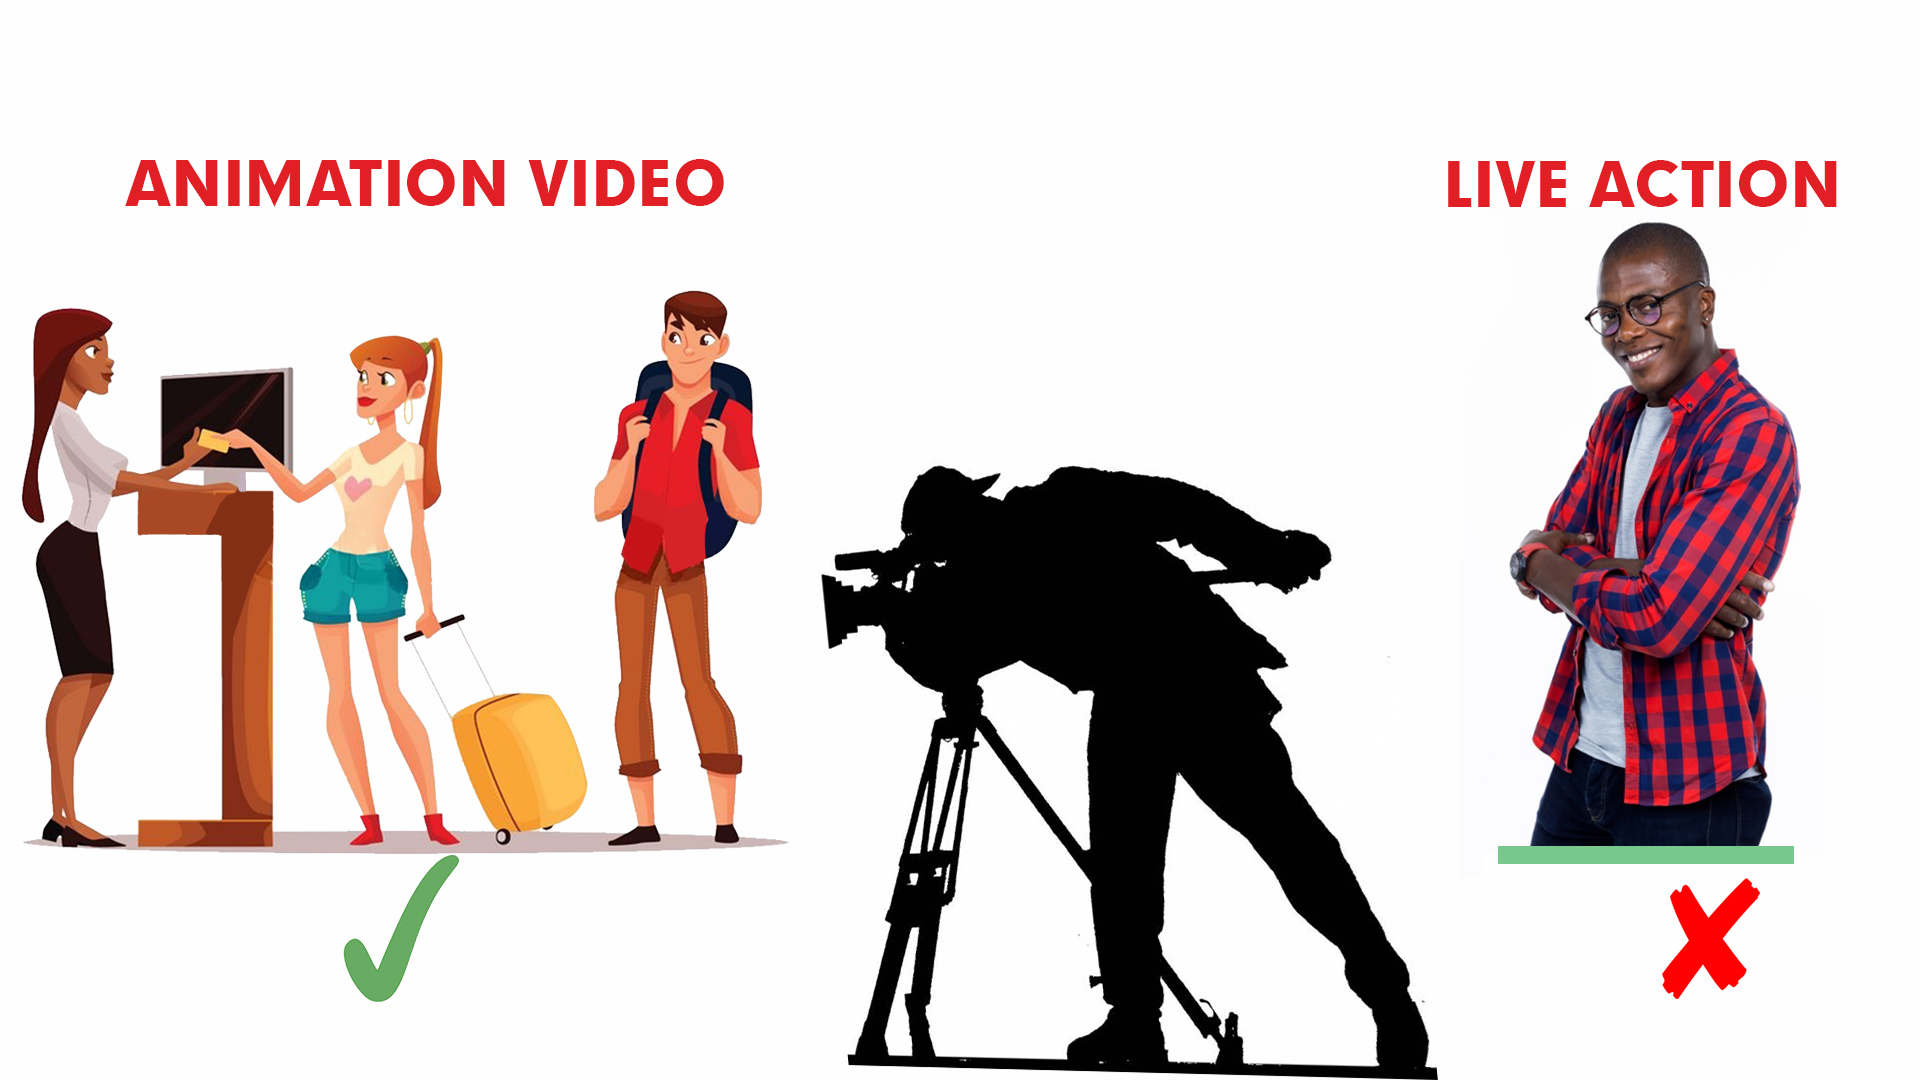 Why film makers prefer animation video instead of live action